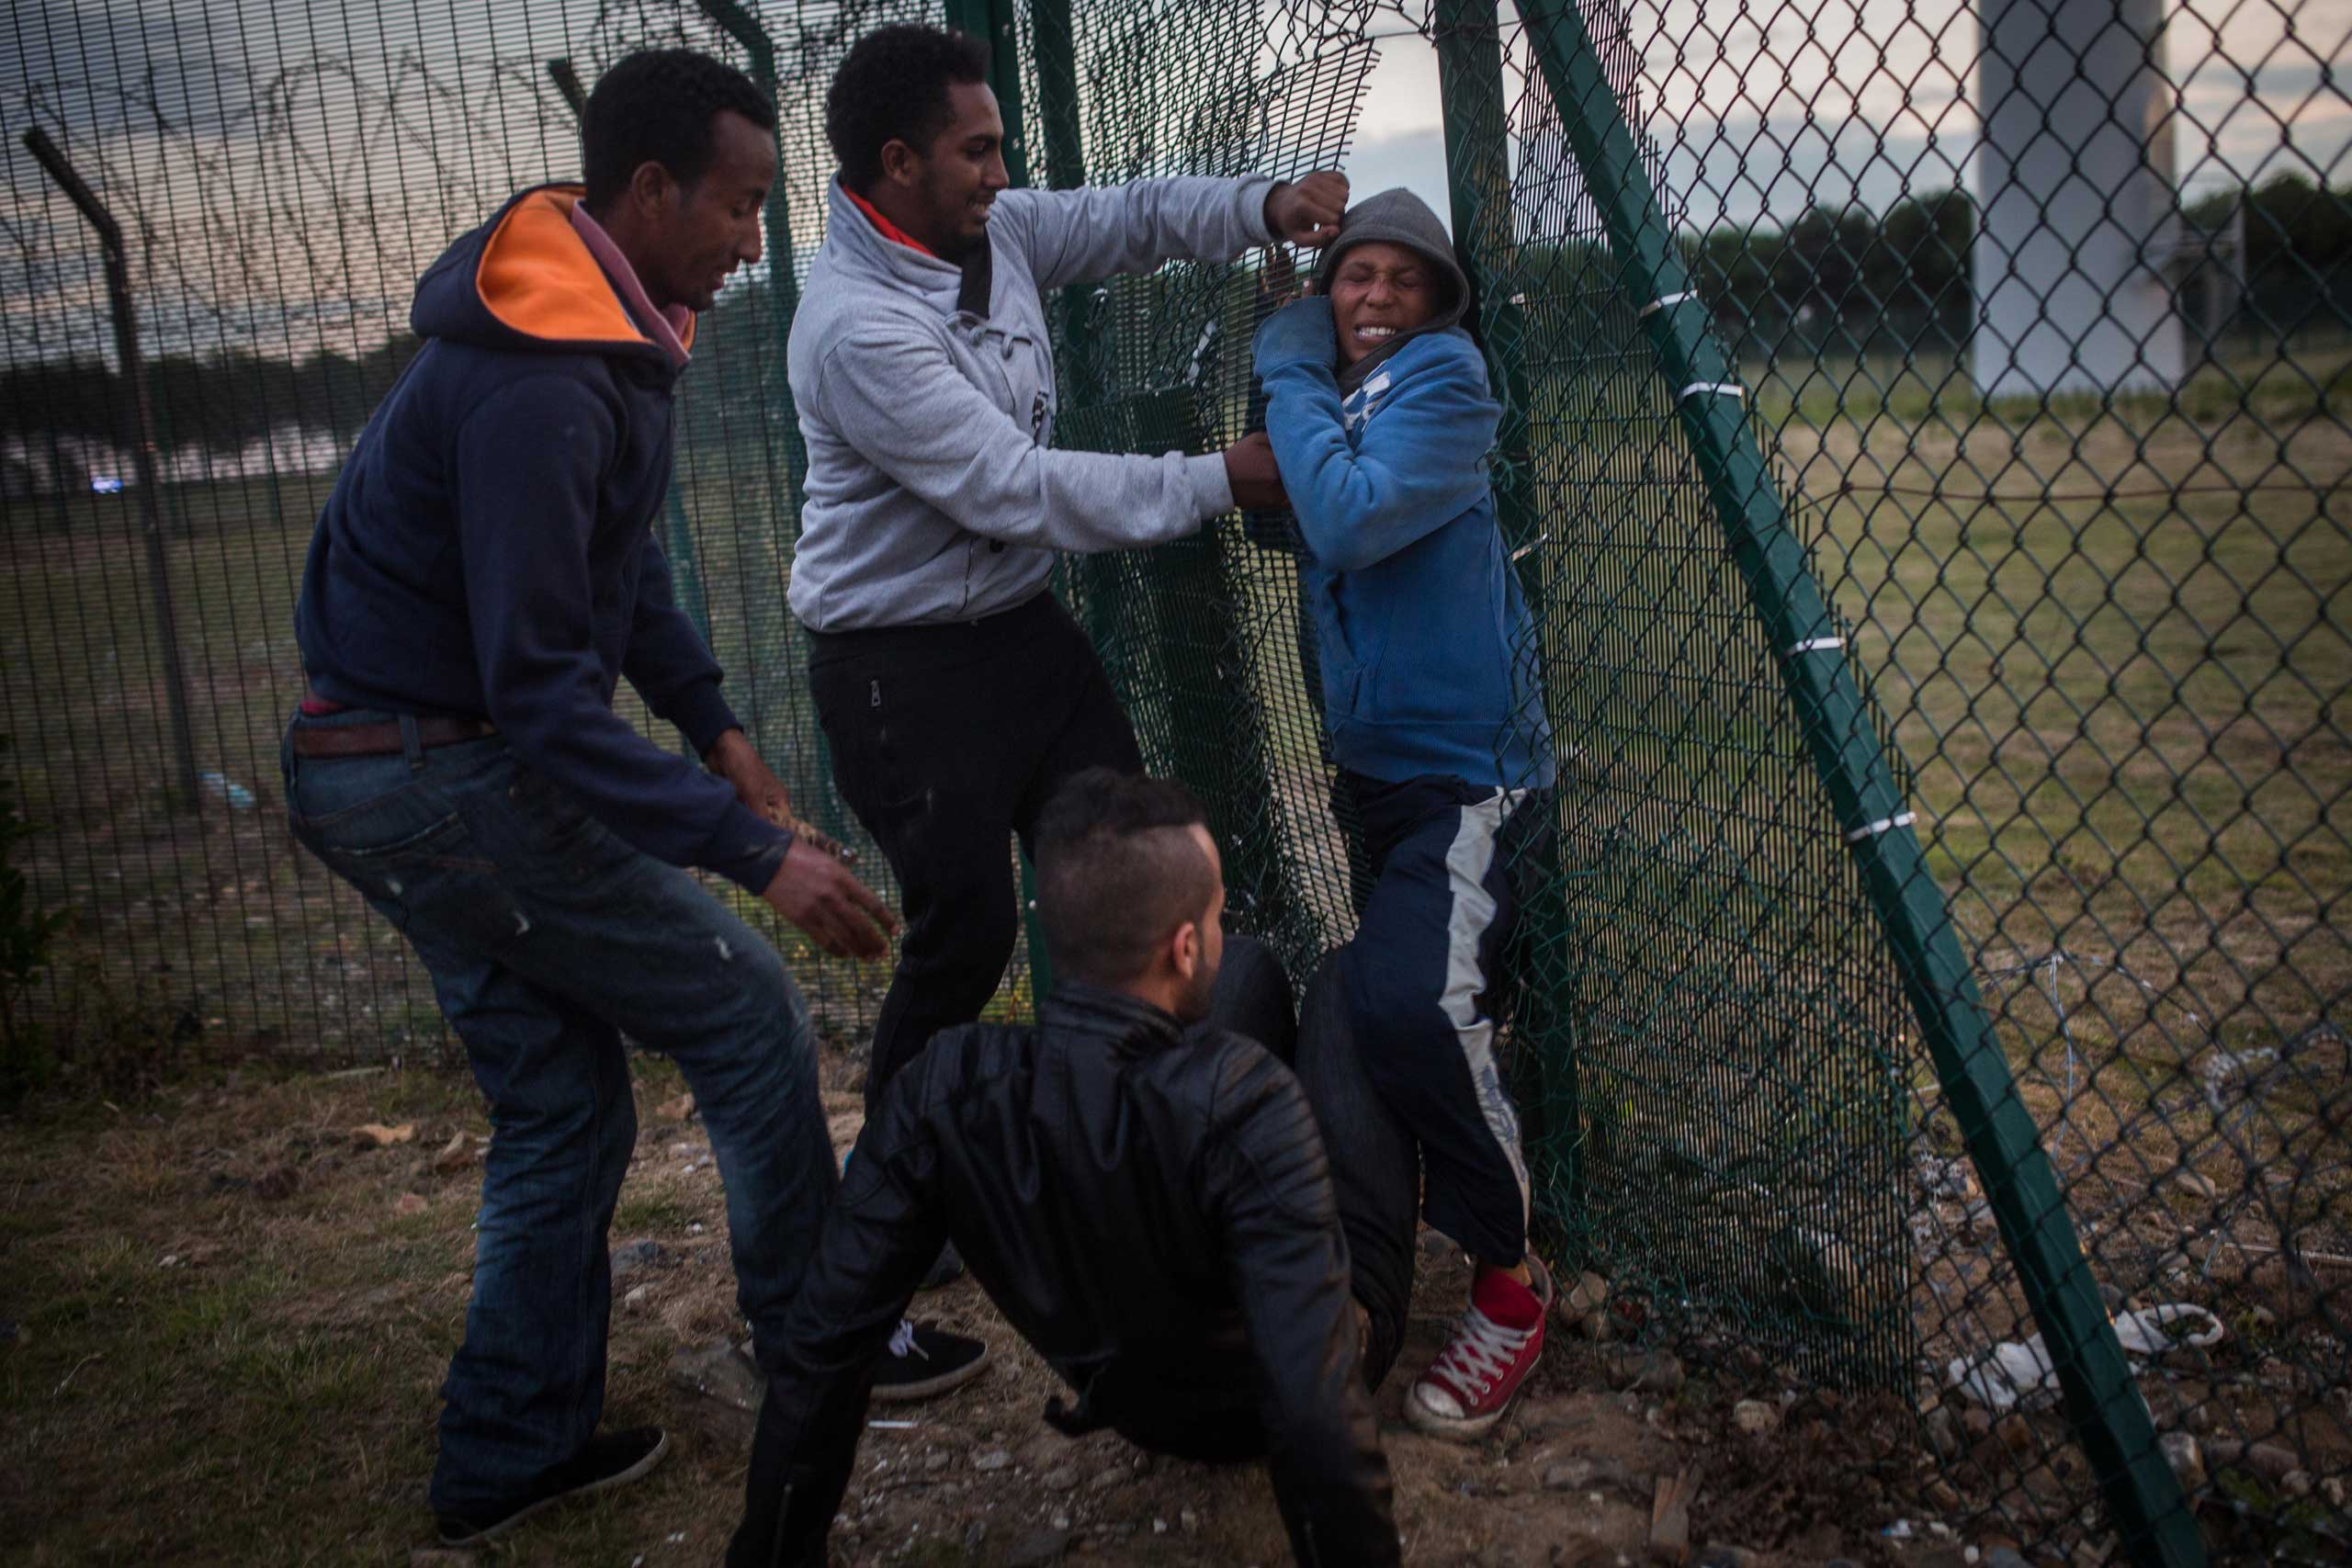 People help a young man squeeze through a gap in a fence near the Eurotunnel terminal in Coquelles in Calais, on July 30, 2015.